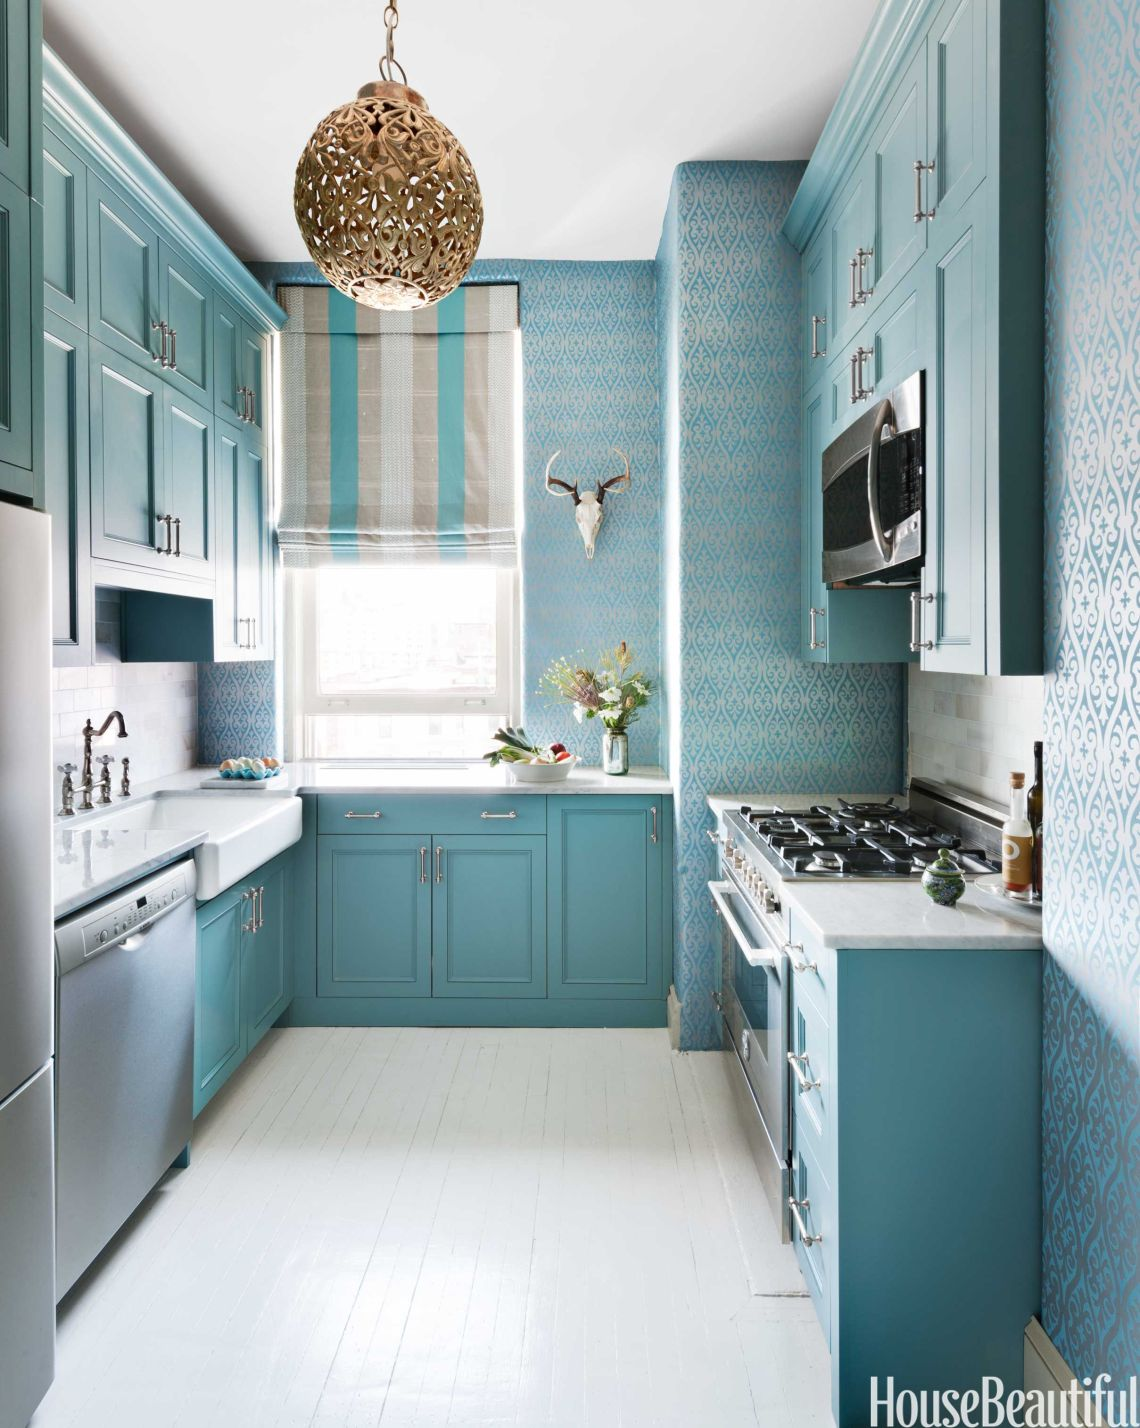 60 Best Small Kitchen Design Ideas Decor Solutions For Small Kitchens